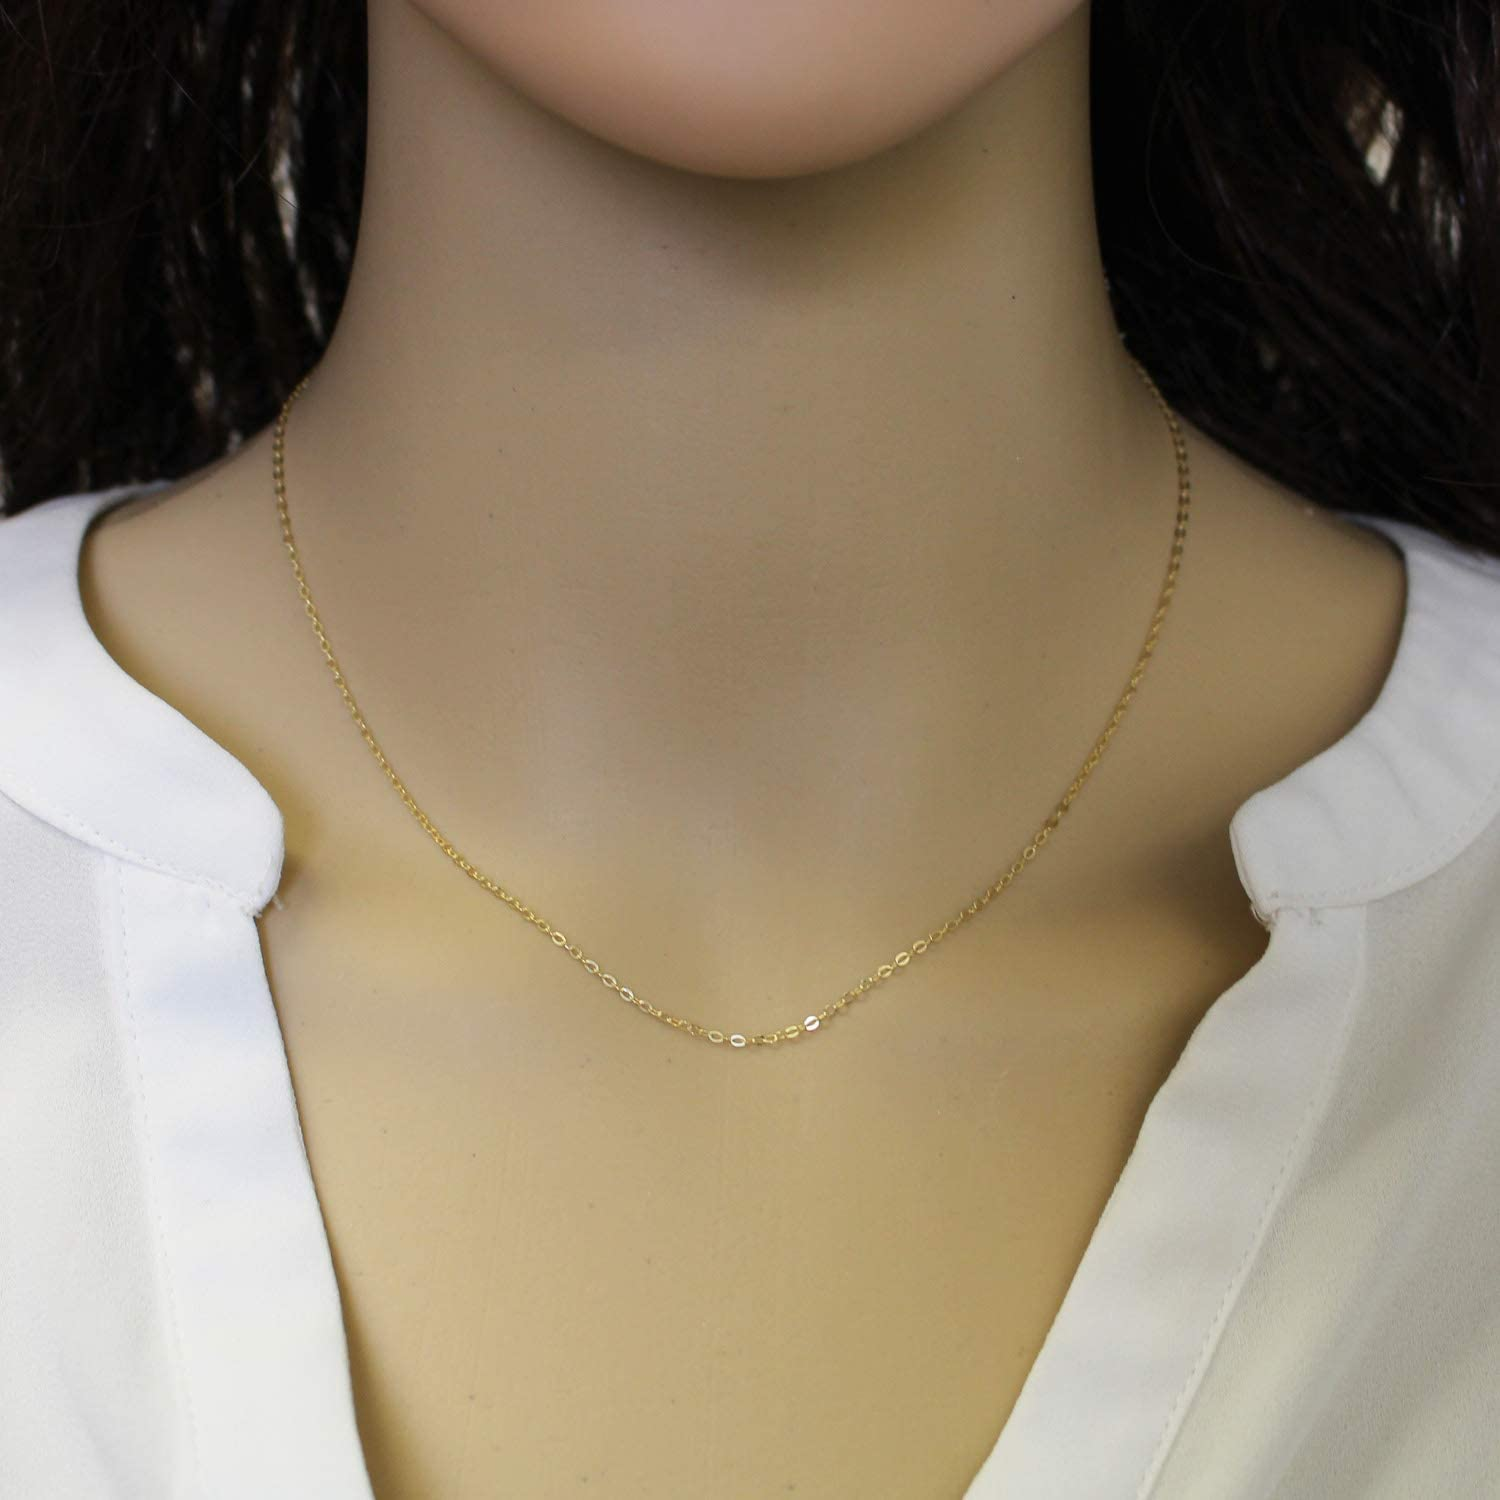 36 inches Vermeil,925 Sterling Silver Chain,Necklace Cable Flat Oval All Sizes 22K Gold Plated Finished Necklace for Pendant